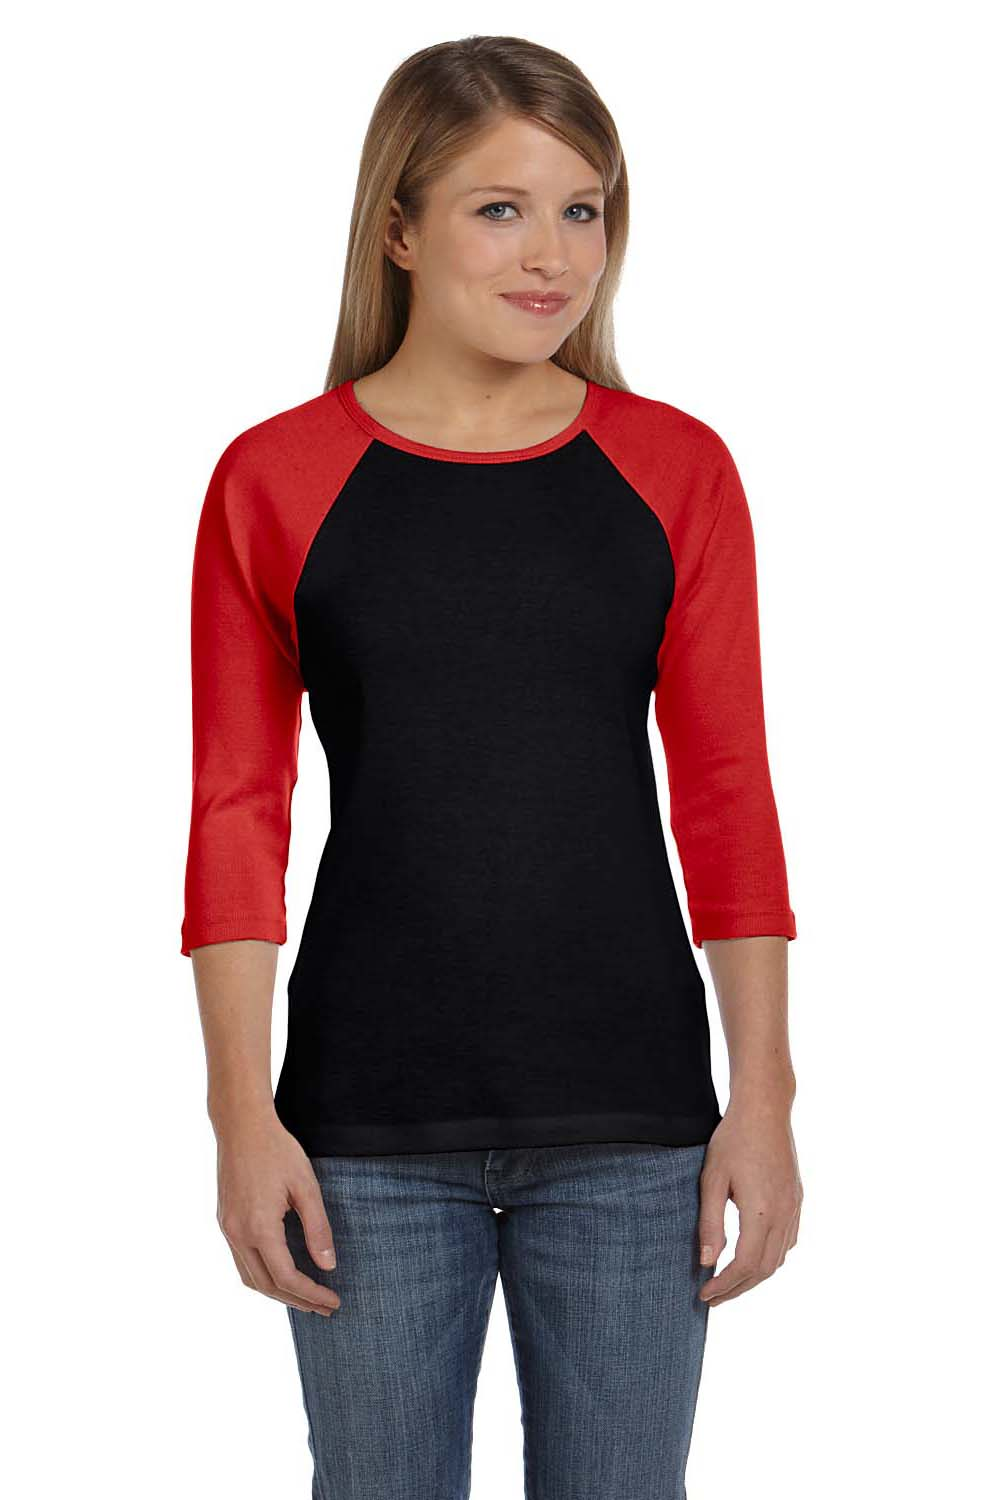 Bella + Canvas B2000 Womens 3/4 Sleeve Crewneck T-Shirt Black/Red Front